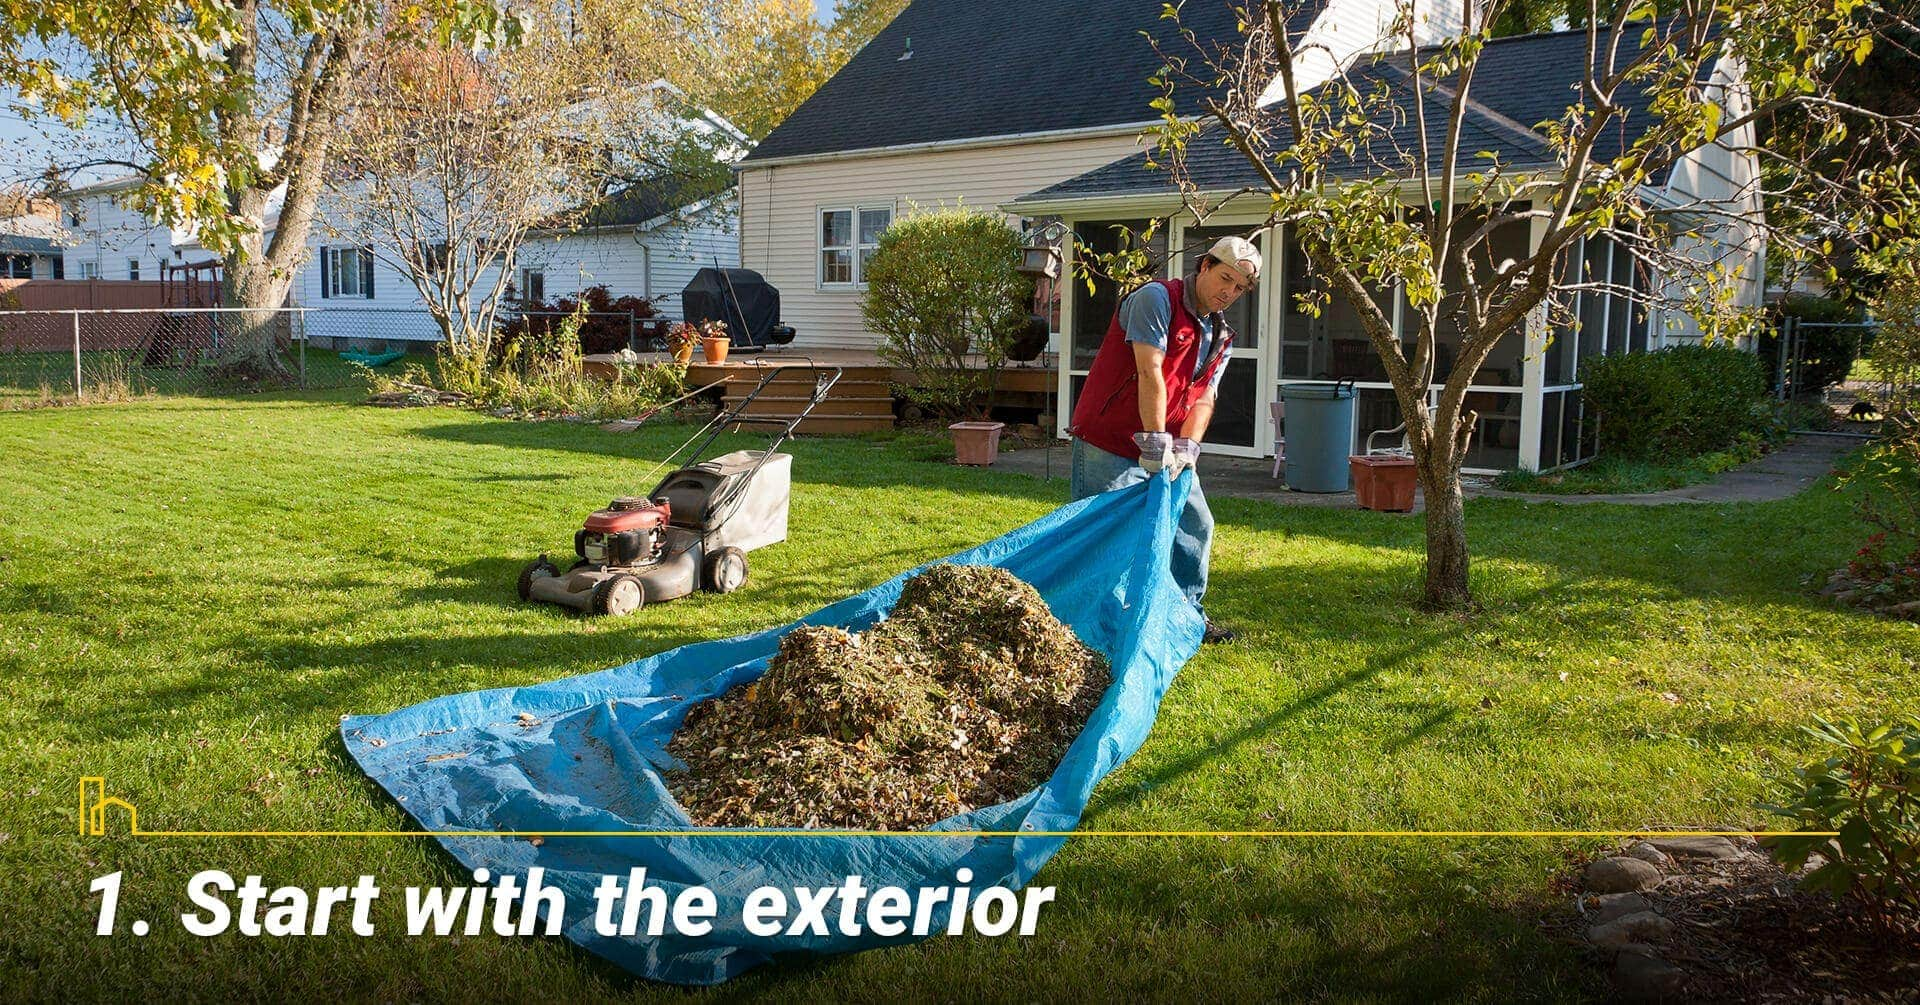 Start with the exterior, keep the exterior clean